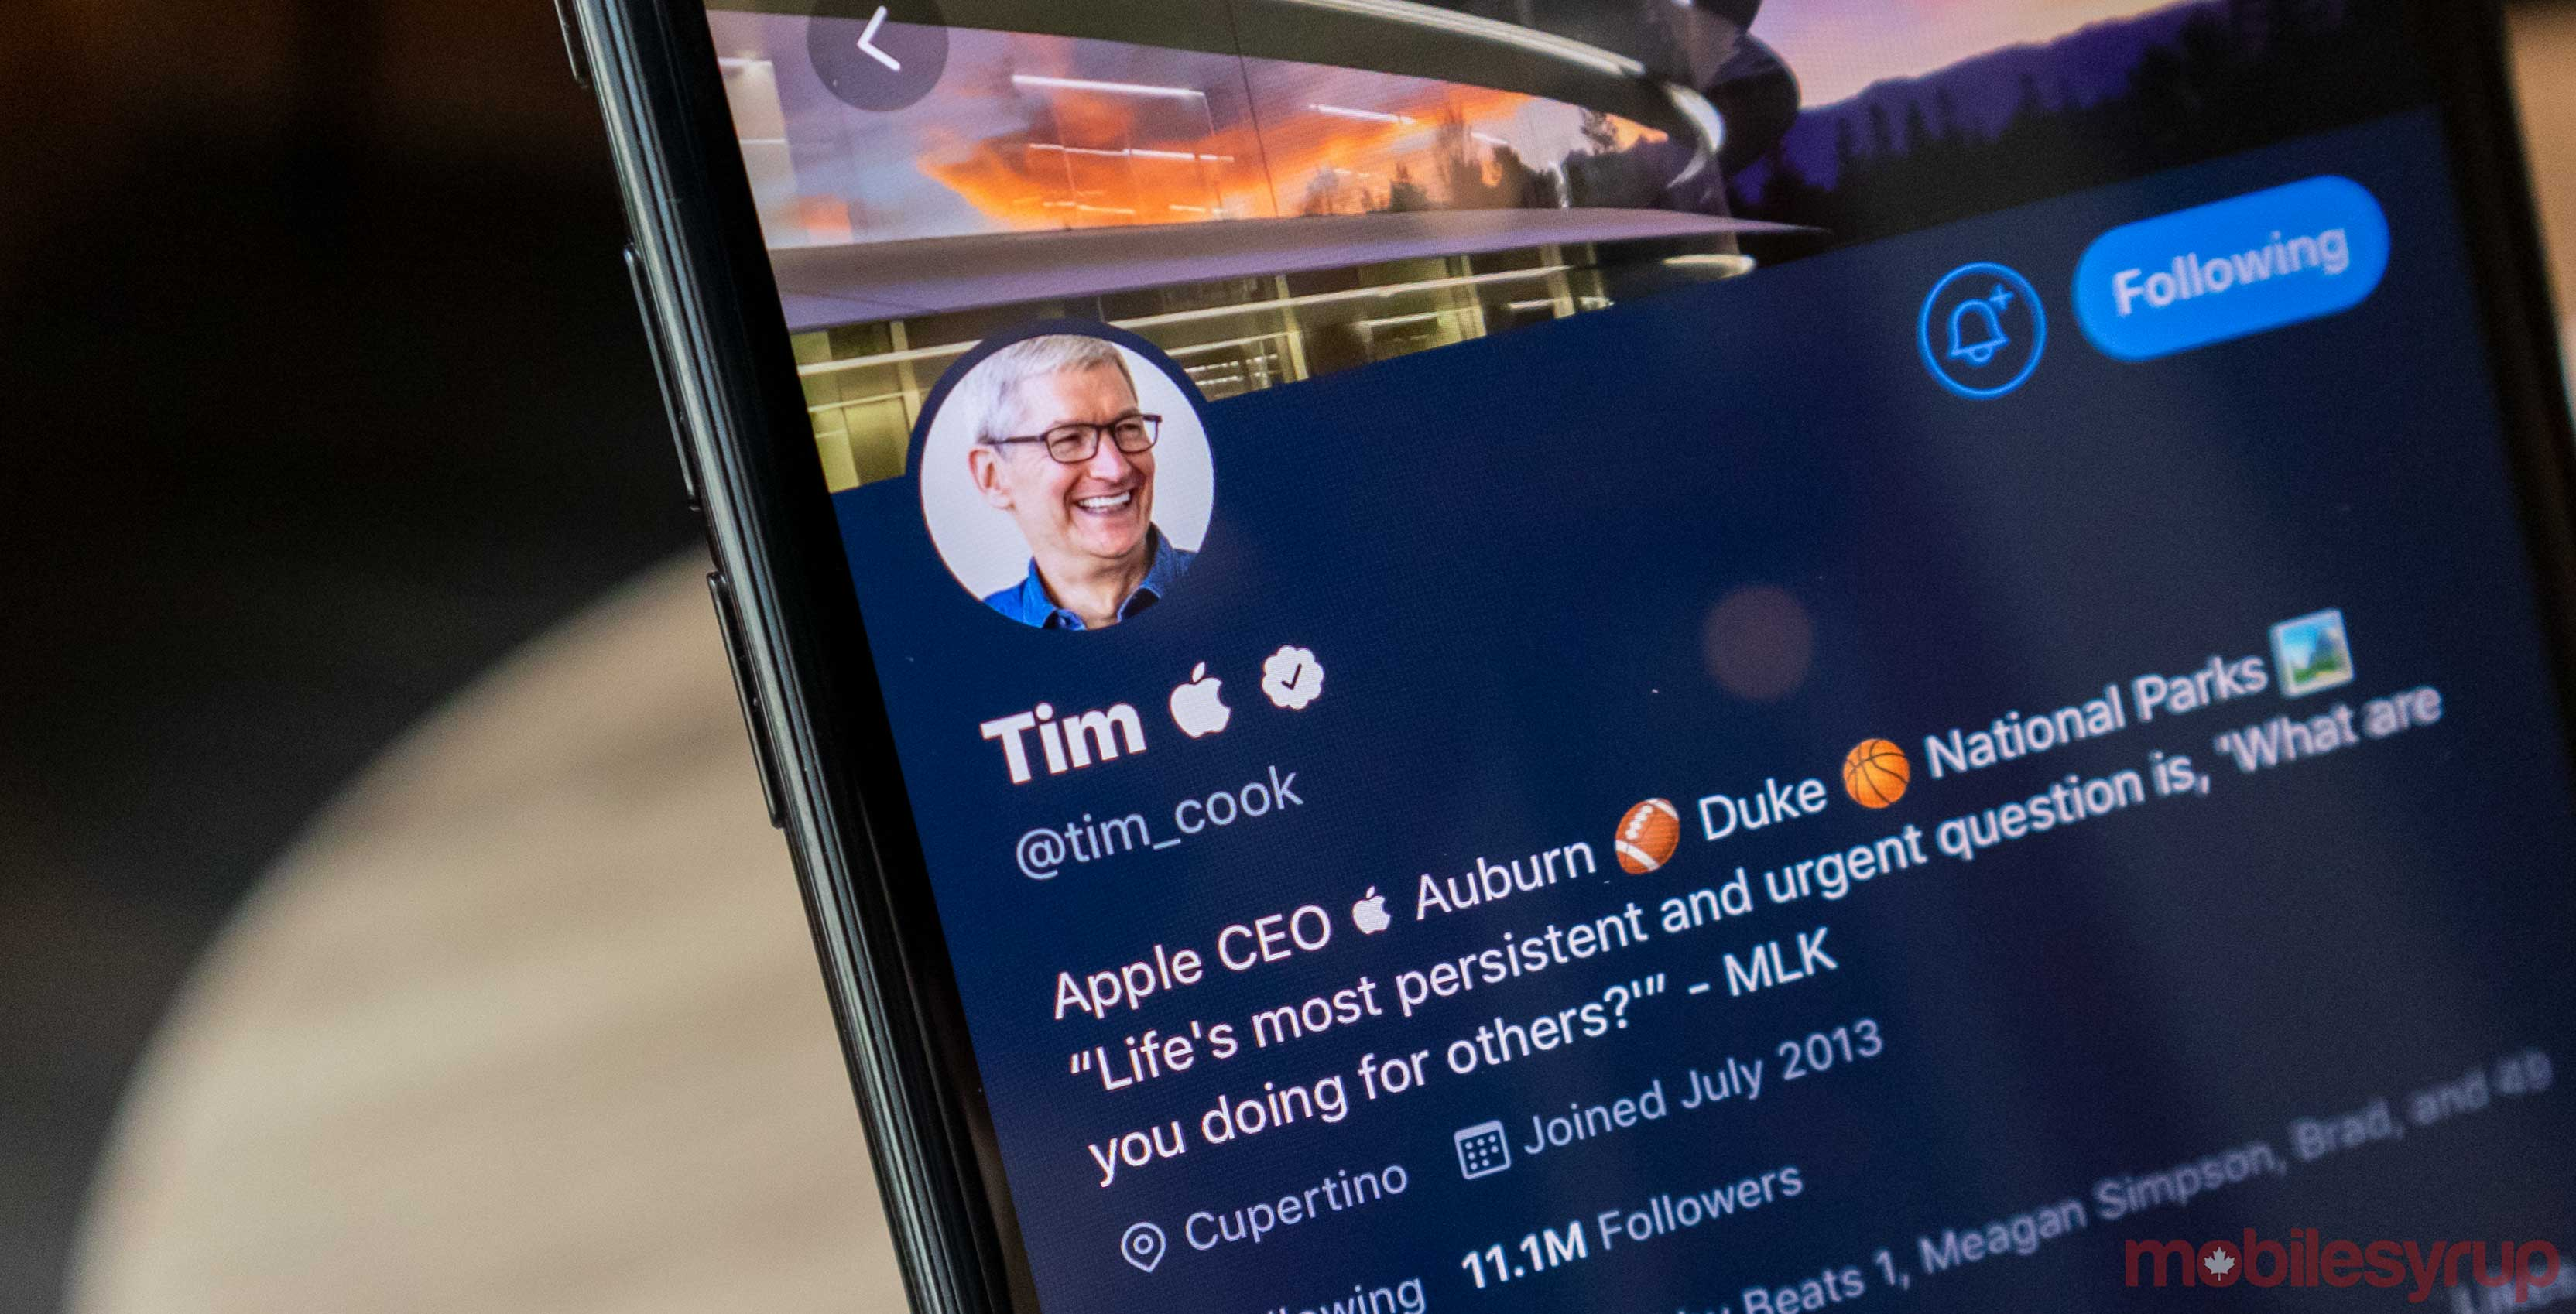 Tim Cook changed his Twitter handle to Tim Apple